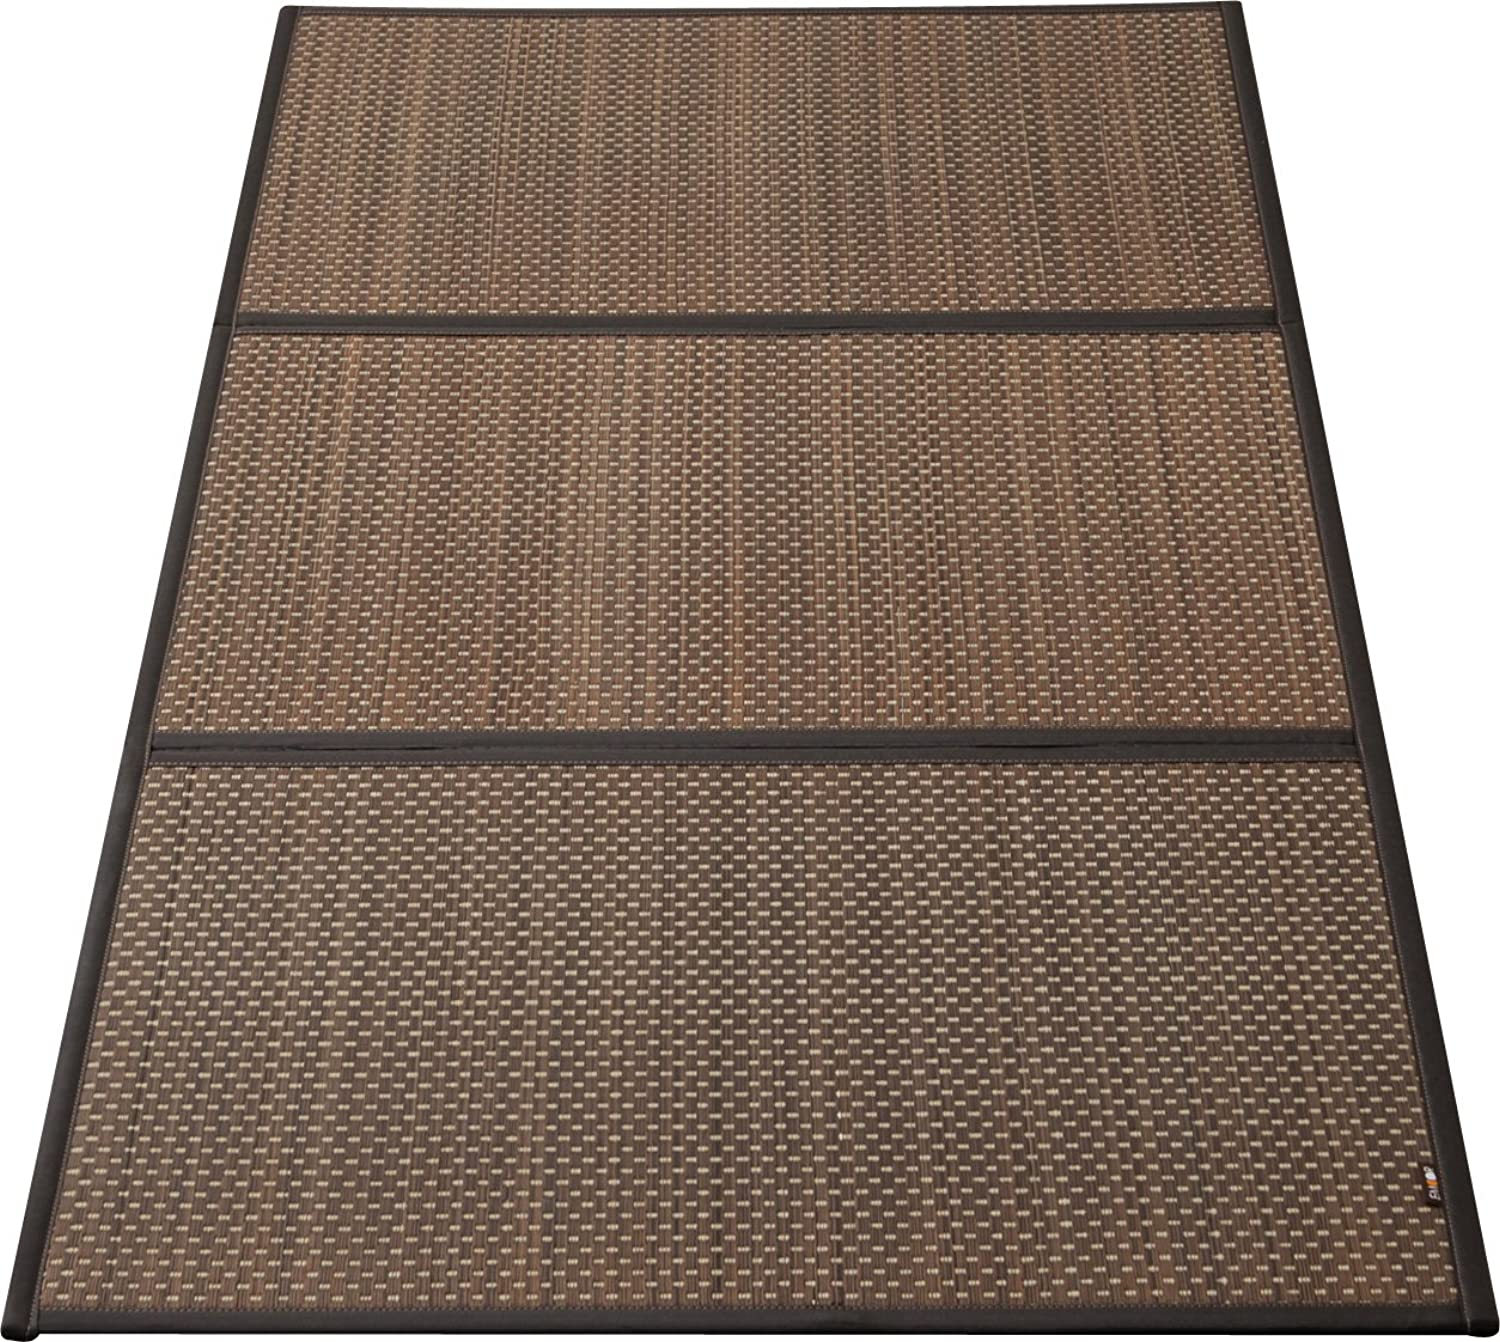 EMOOR Japanese Traditional Tatami (Igusa) Mattress, Full-Long Size (55x83), Brown, Made in Japan